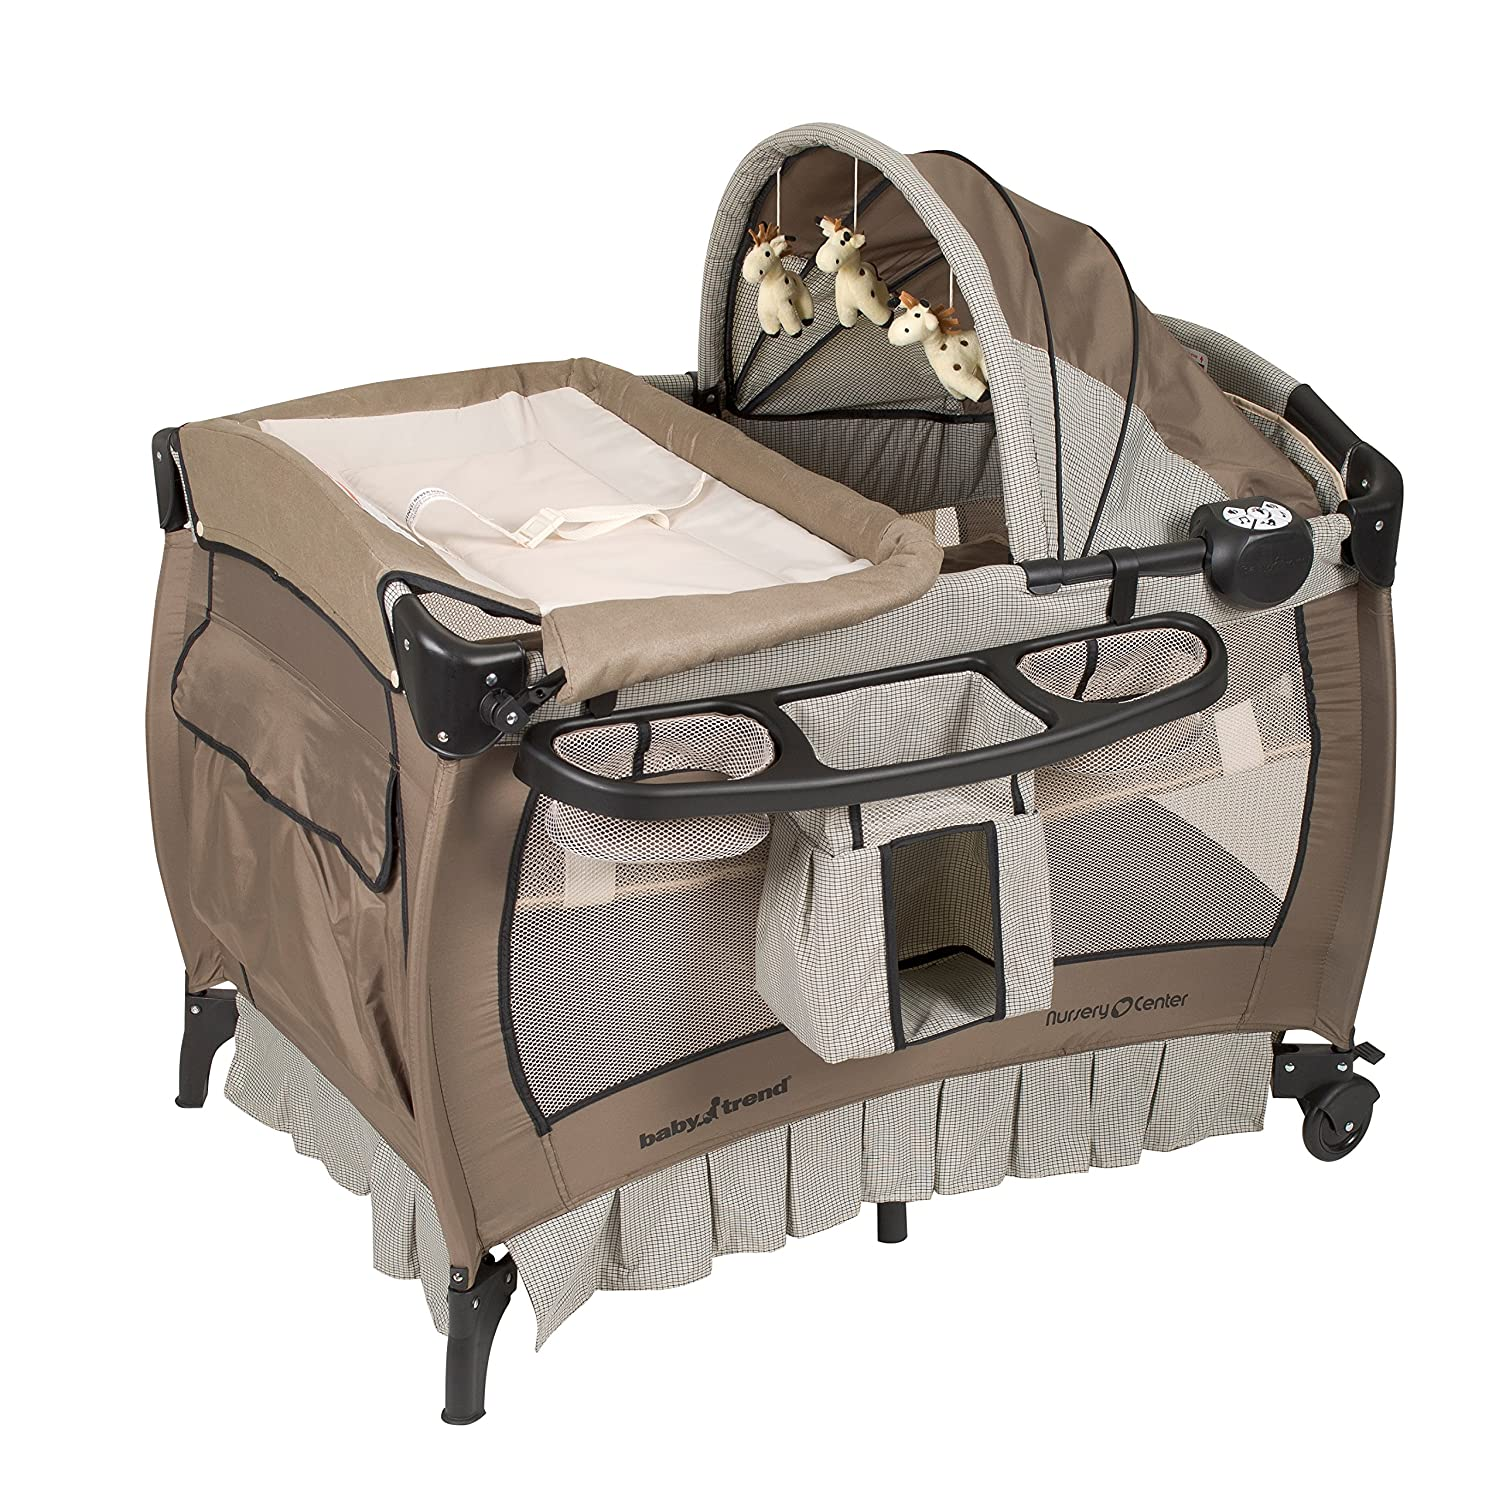 Baby Trend Deluxe Nursery Center, Haven Wood 8274BCC